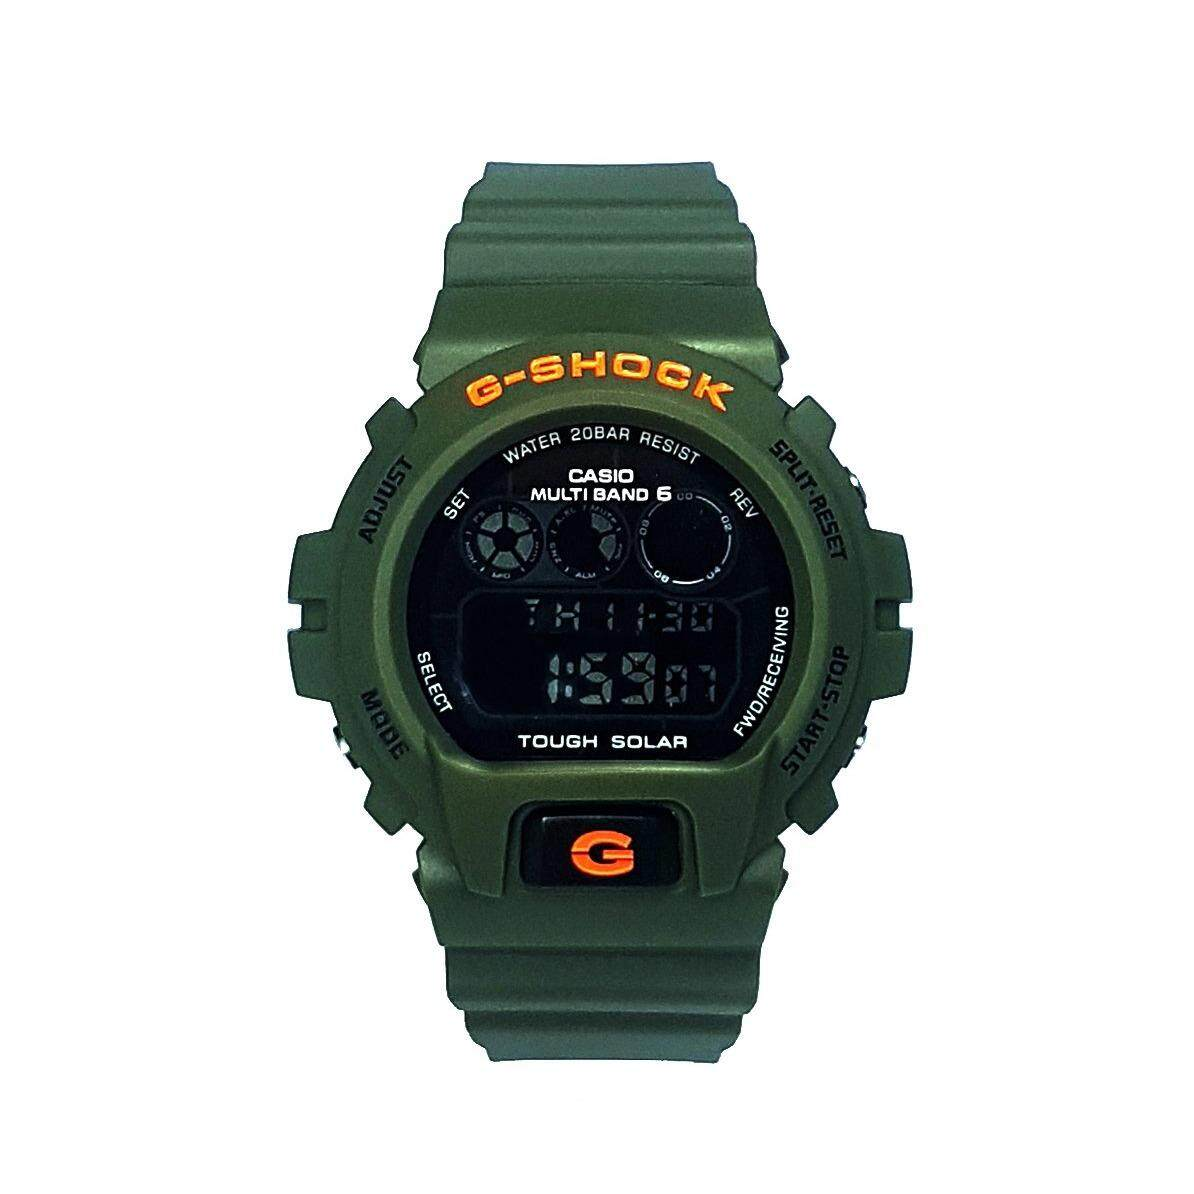 Features Rare Casio G Shock Dw 6900ln 3a Army Green Orange Resin 6900nb 7dr Straps Sports